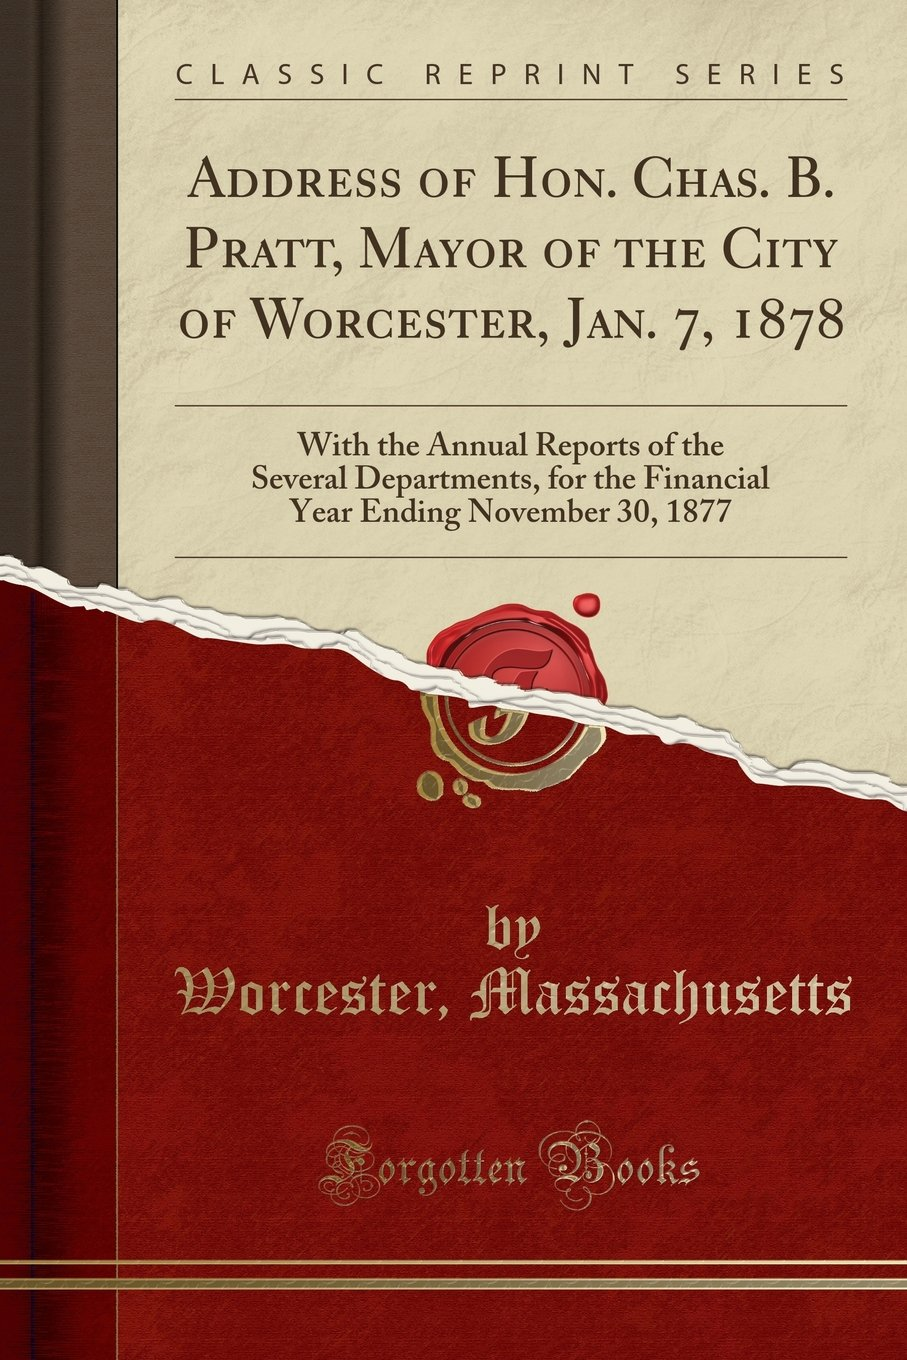 Address of Hon. Chas. B. Pratt, Mayor of the City of Worcester, Jan. 7, 1878: With the Annual Reports of the Several Departments, for the Financial Year Ending November 30, 1877 (Classic Reprint) pdf epub